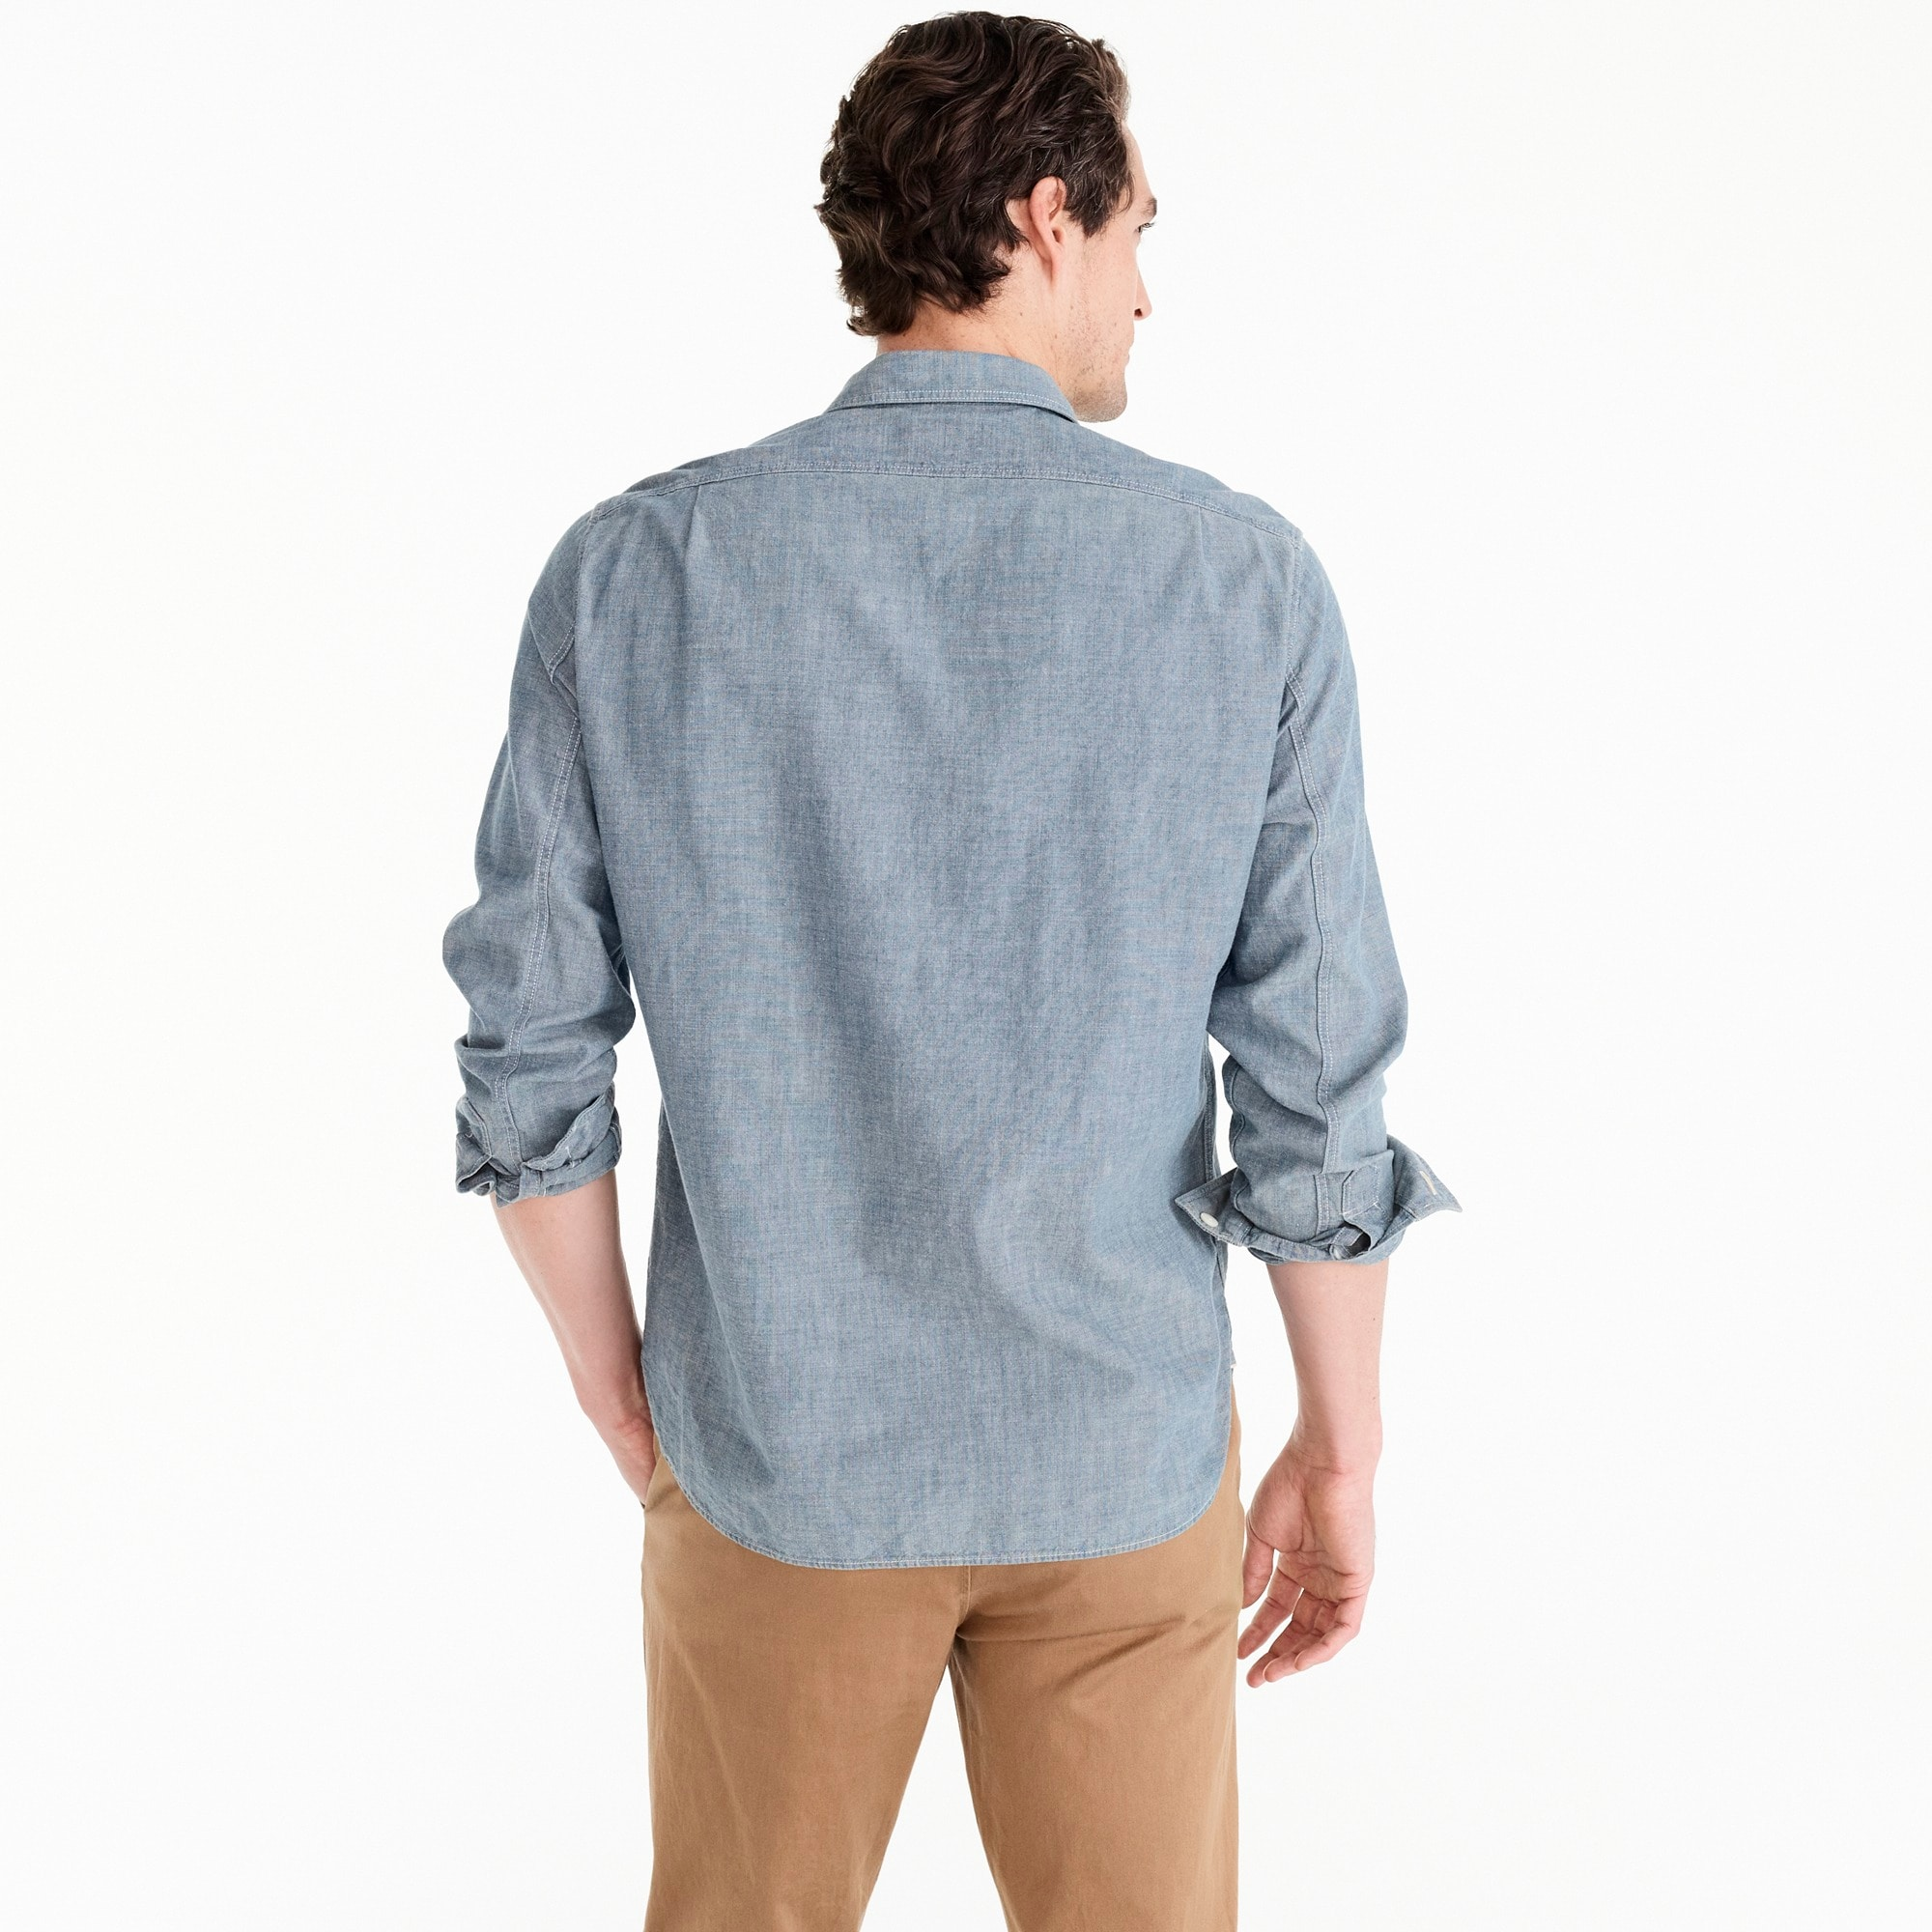 Image 3 for Selvedge Japanese chambray utility shirt